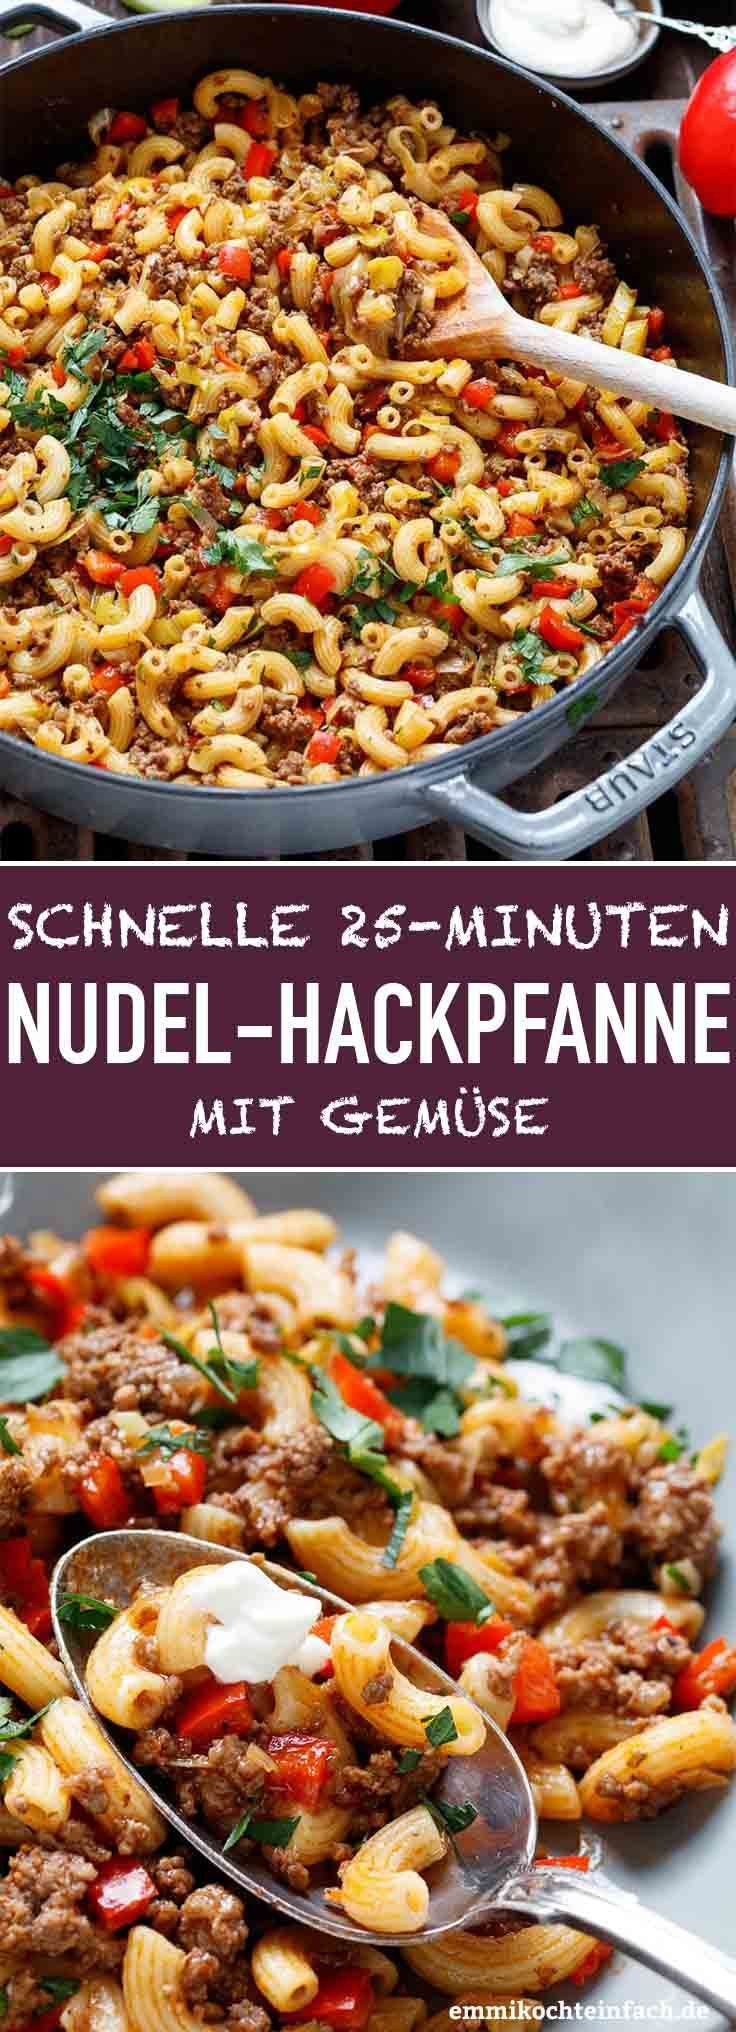 Quick Hackpfanne with Hörnchennudeln and vegetables | The simple recipe will be ...